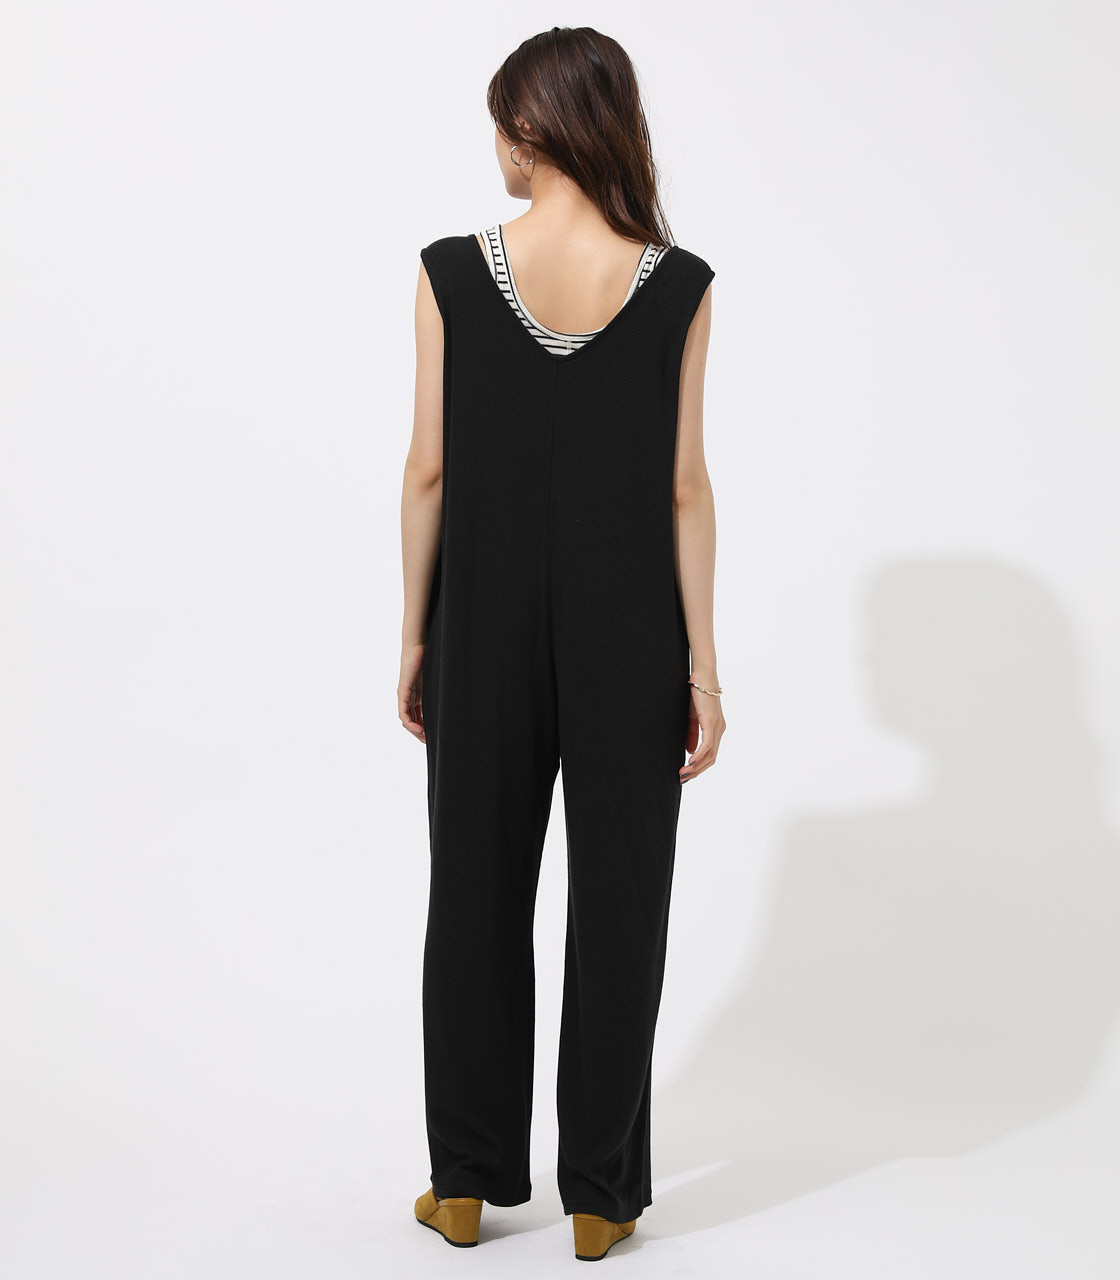 RIB SLEEVELESS ALL IN ONE 詳細画像 BLK 6